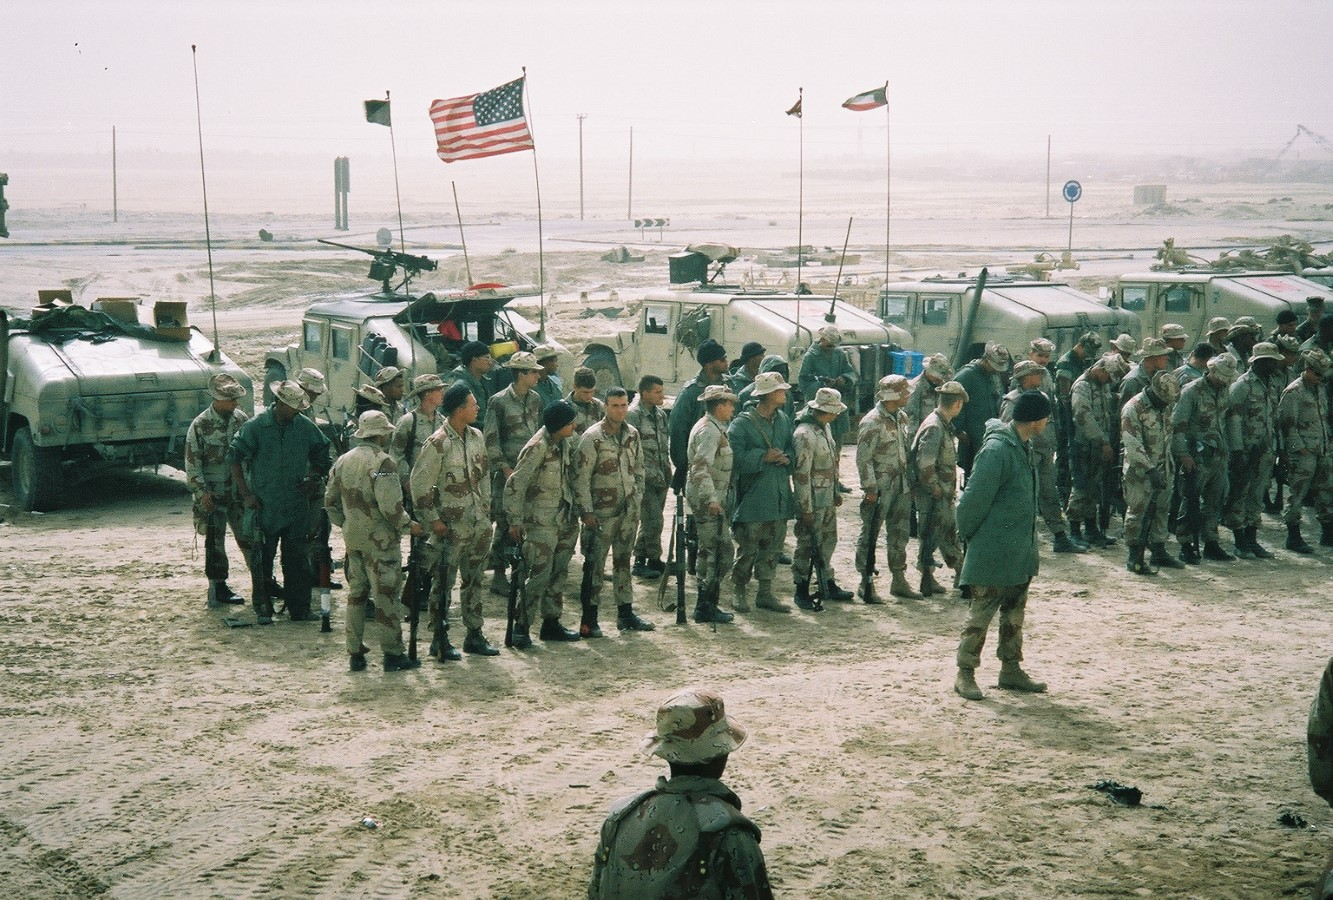 Essay about the help war in iraq